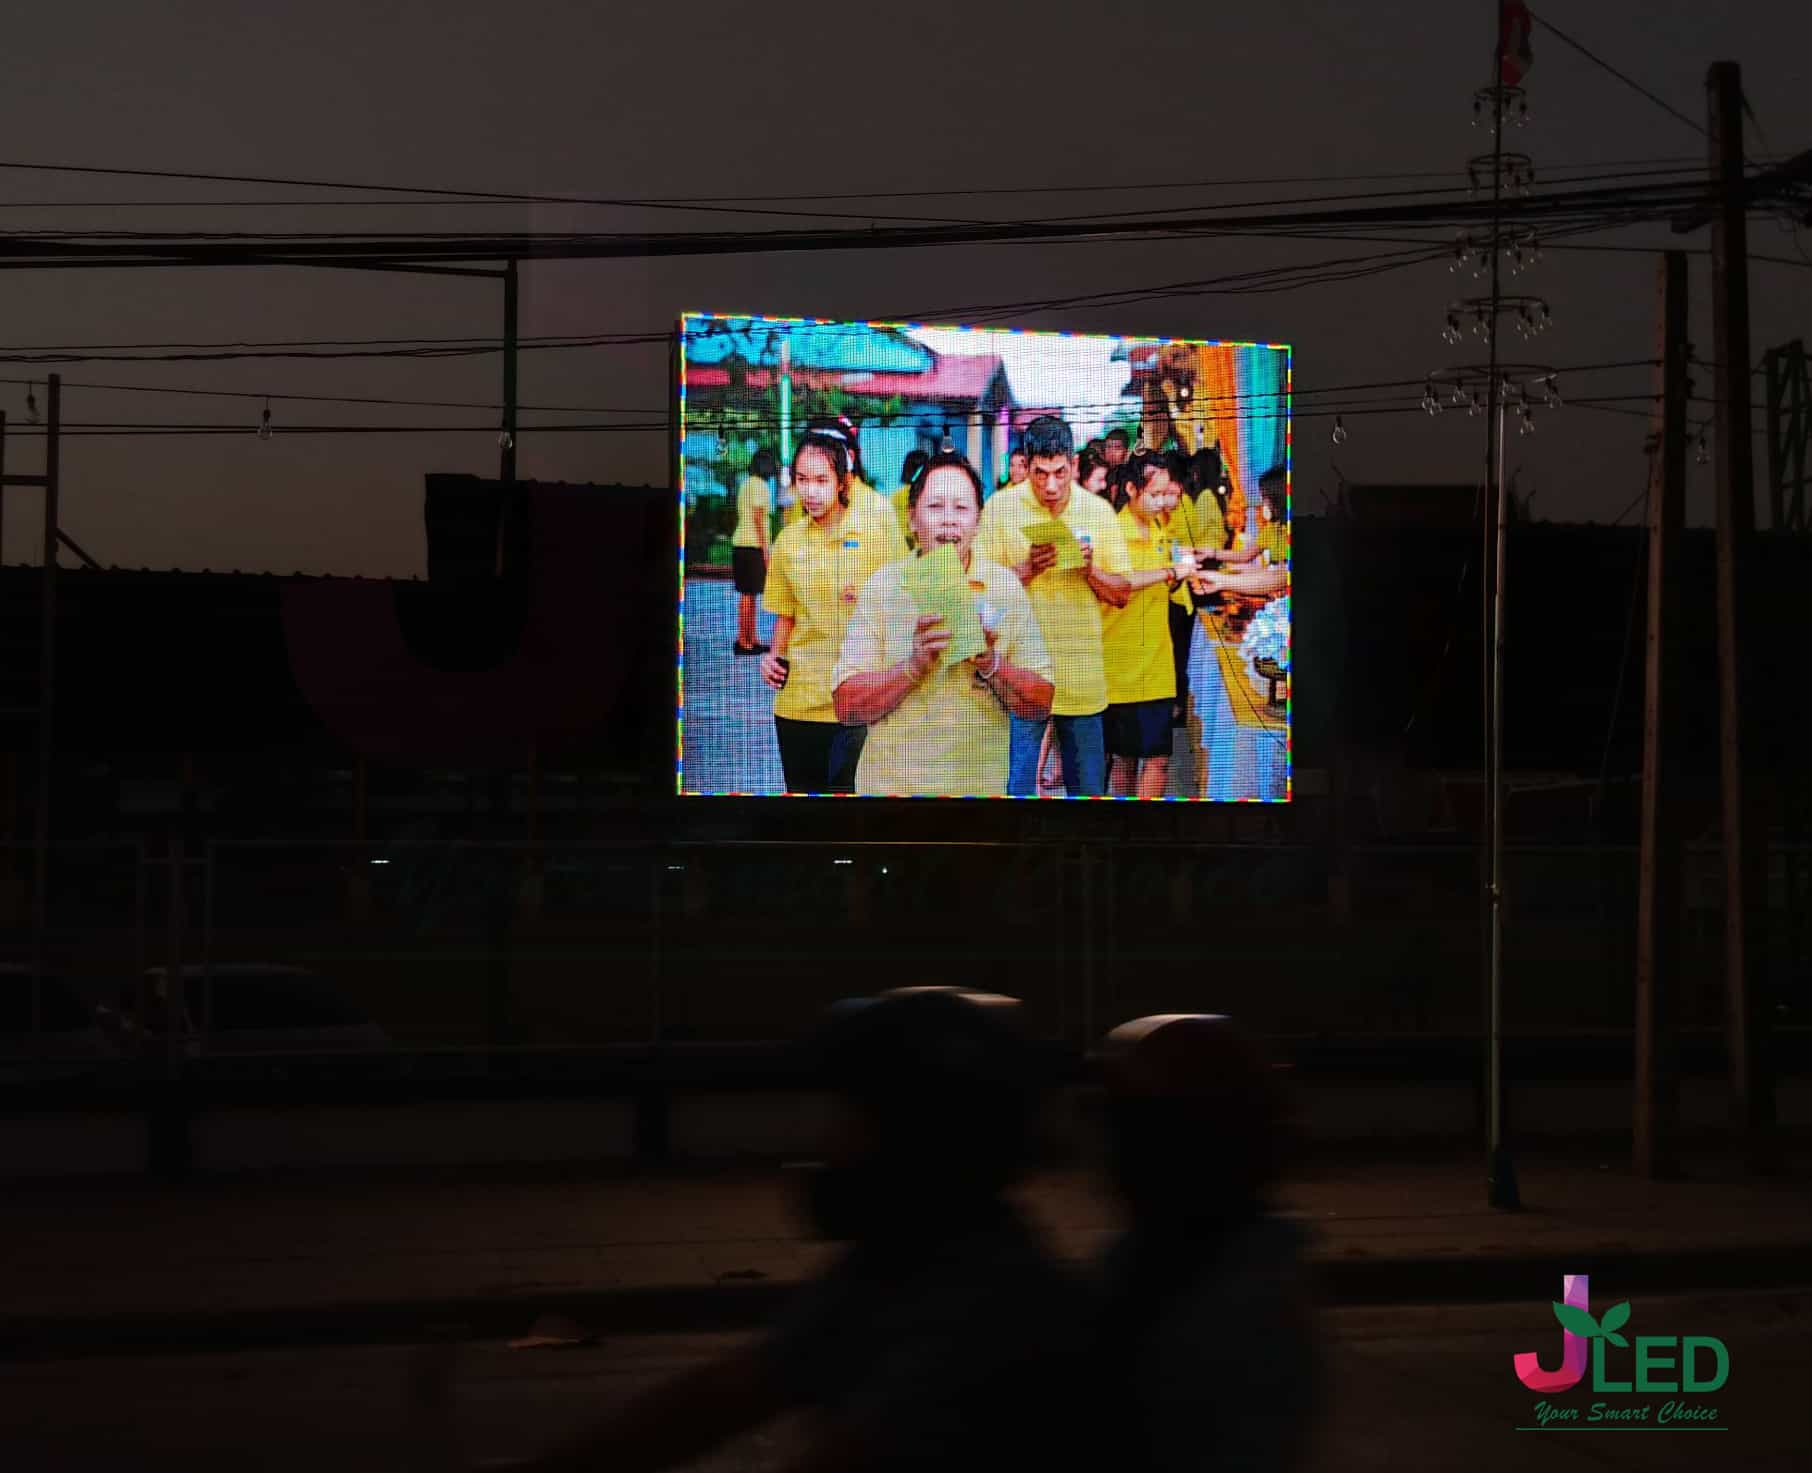 จอled display outdoor p10 school bang phli